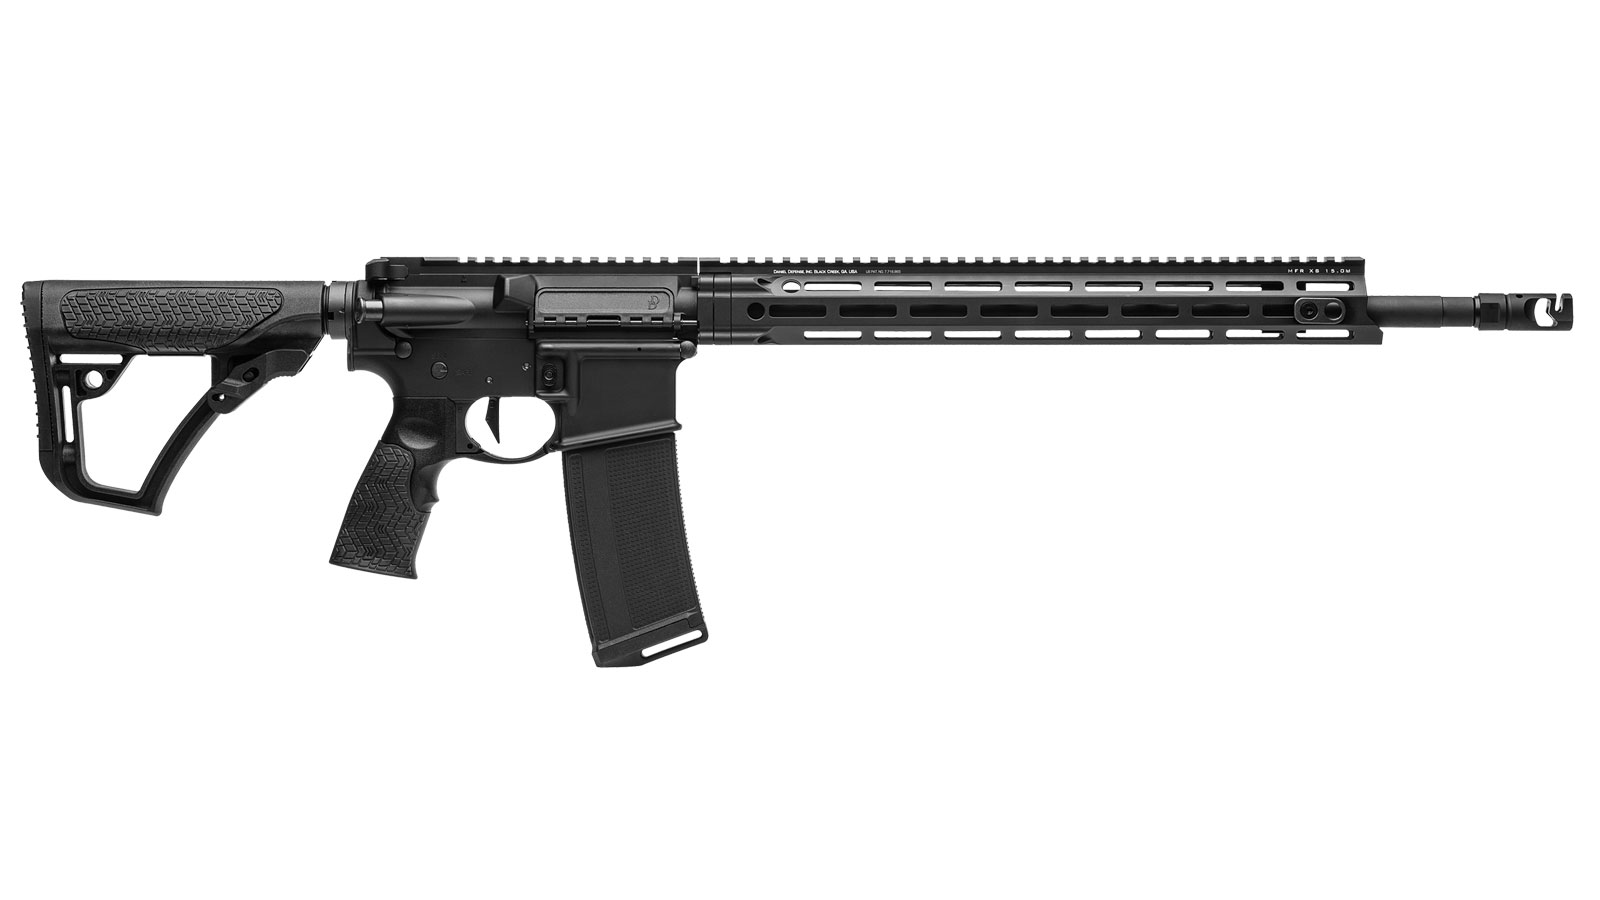 Daniel Defense 16541047 DDM4 V7 Pro Semi-Automatic 223 Remington|5.56 NATO 18 30+1 6-Position Black Stock Black in.